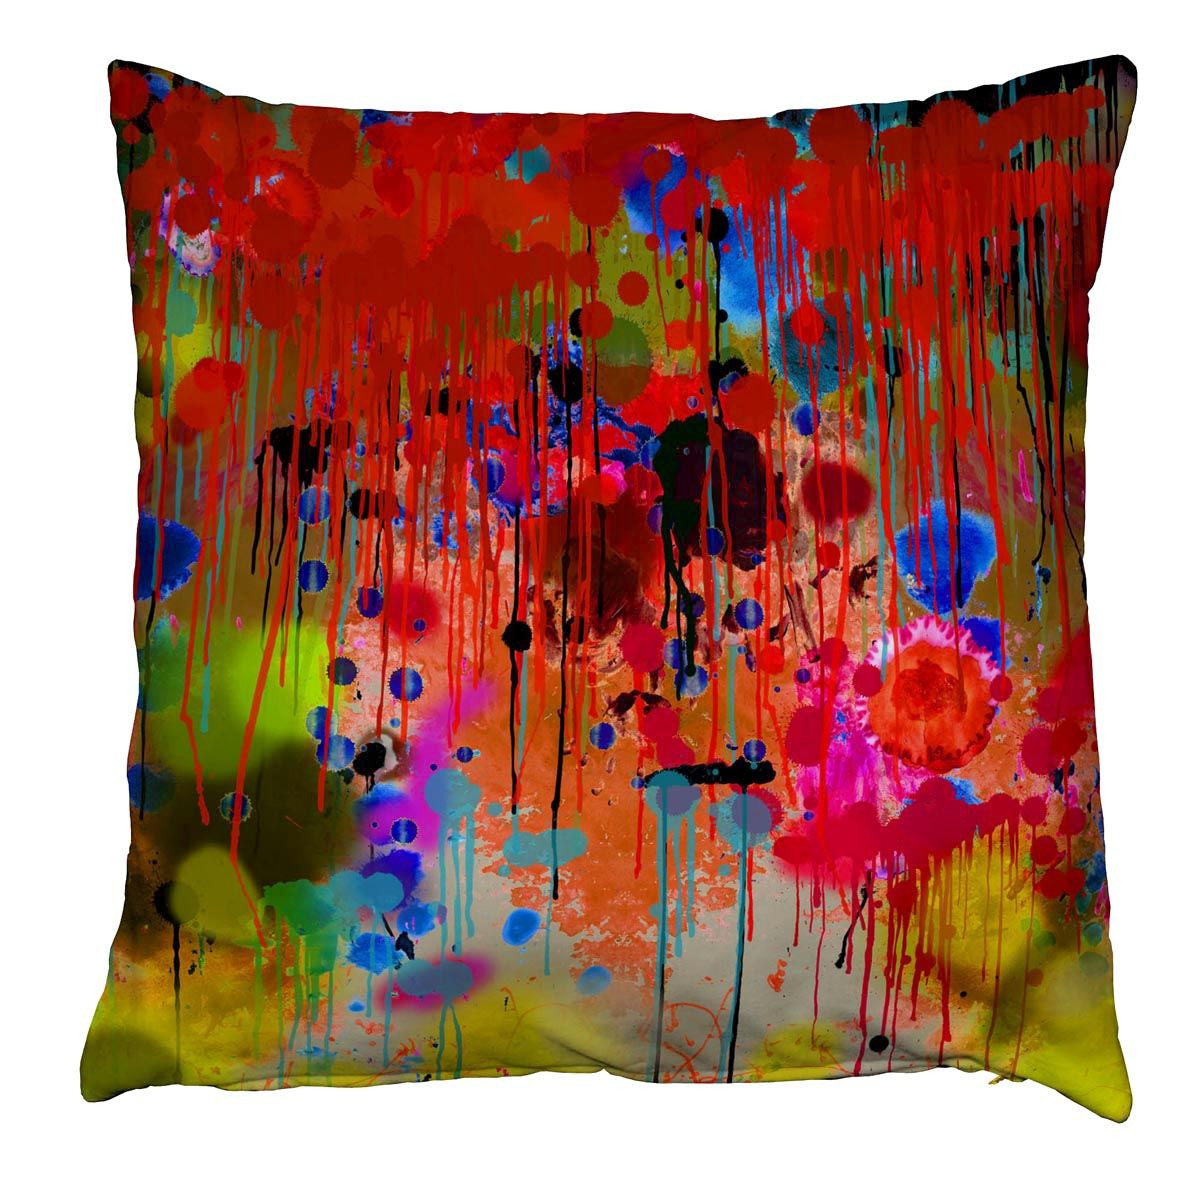 graffiti drips | cushion, timorous beasties, accessories | pillows and cushions, - adorn.house